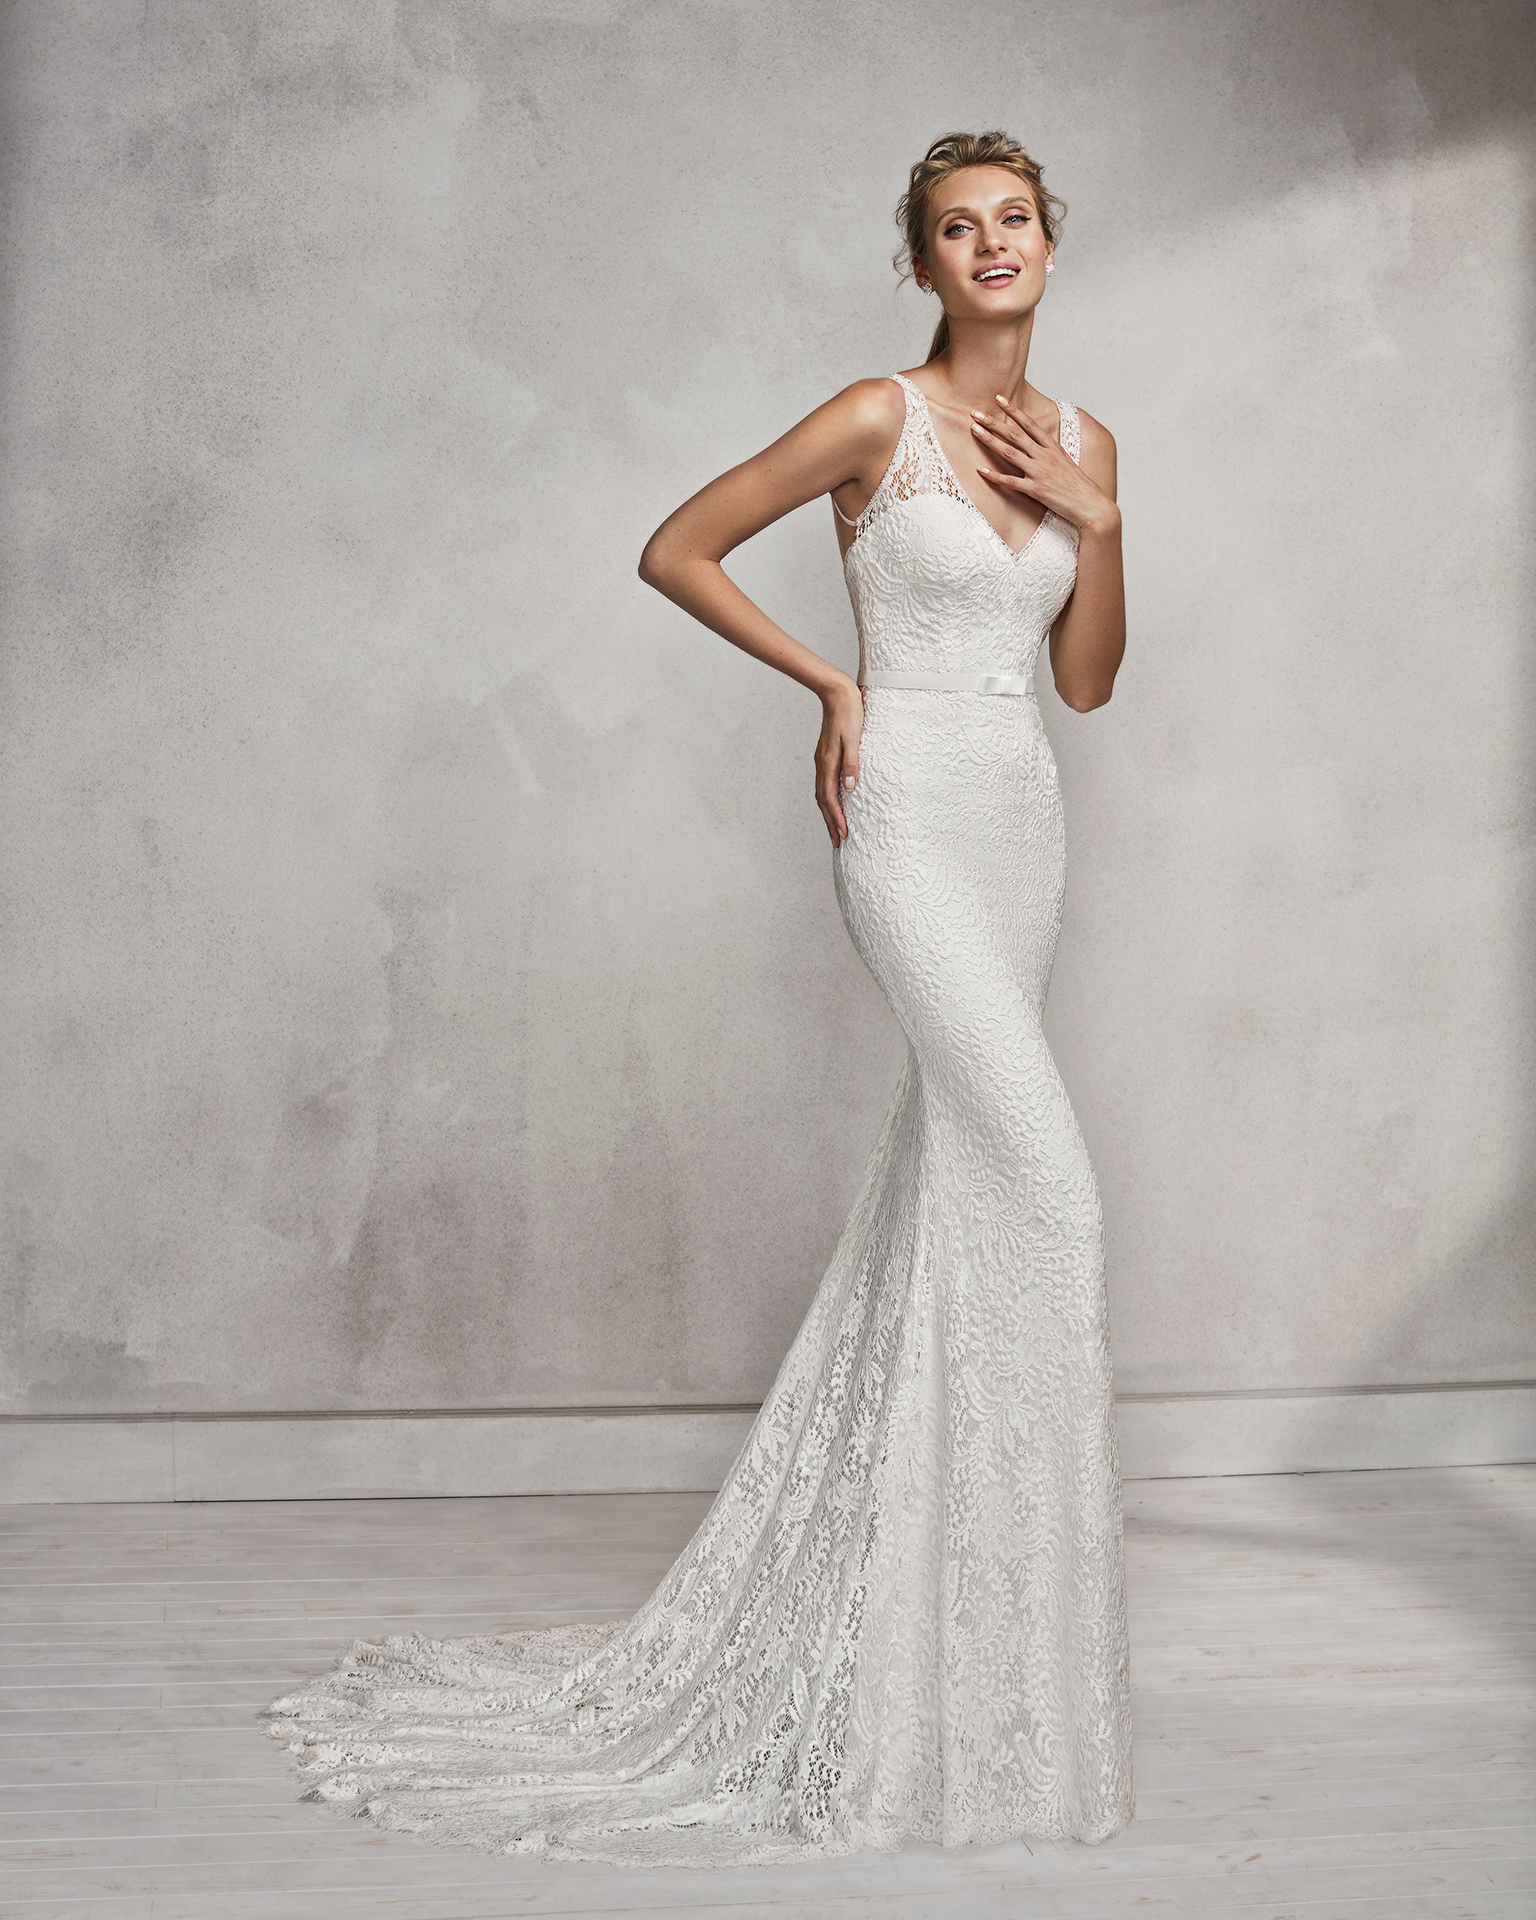 Mermaid-style beaded lace wedding dress with V-neckline and low back.